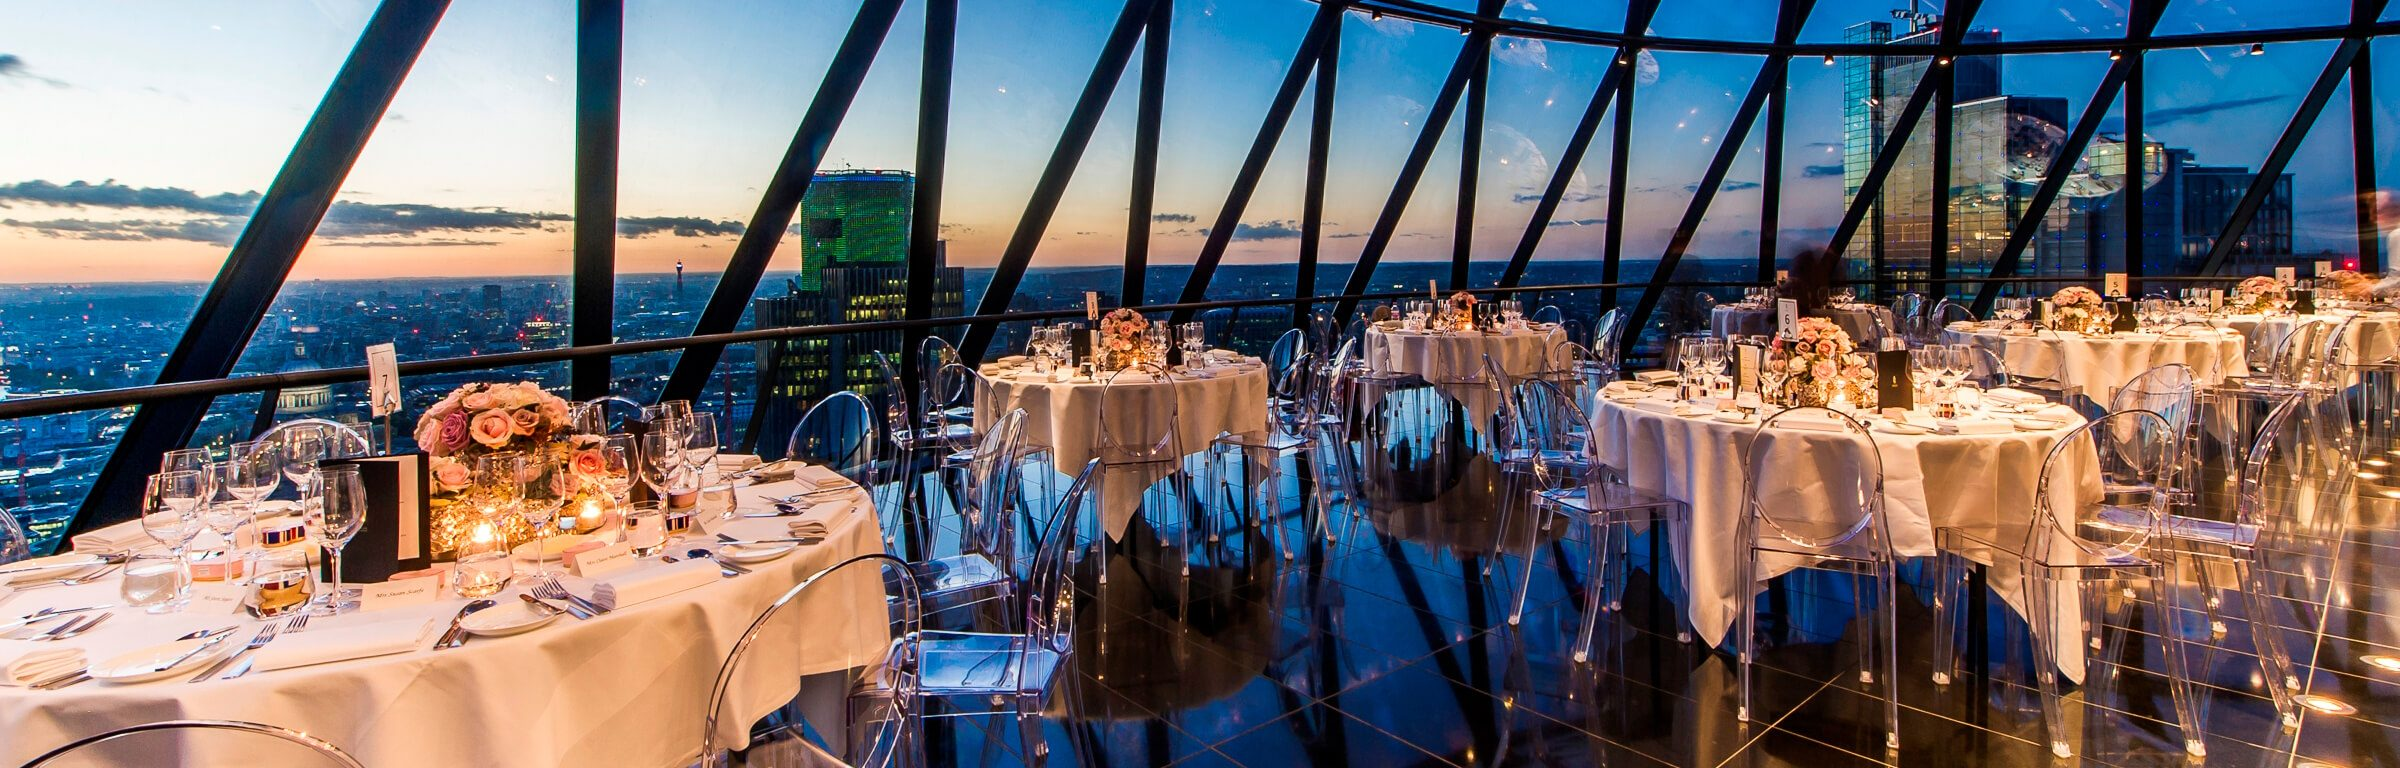 Event Spaces - Searcys at the Gherkin